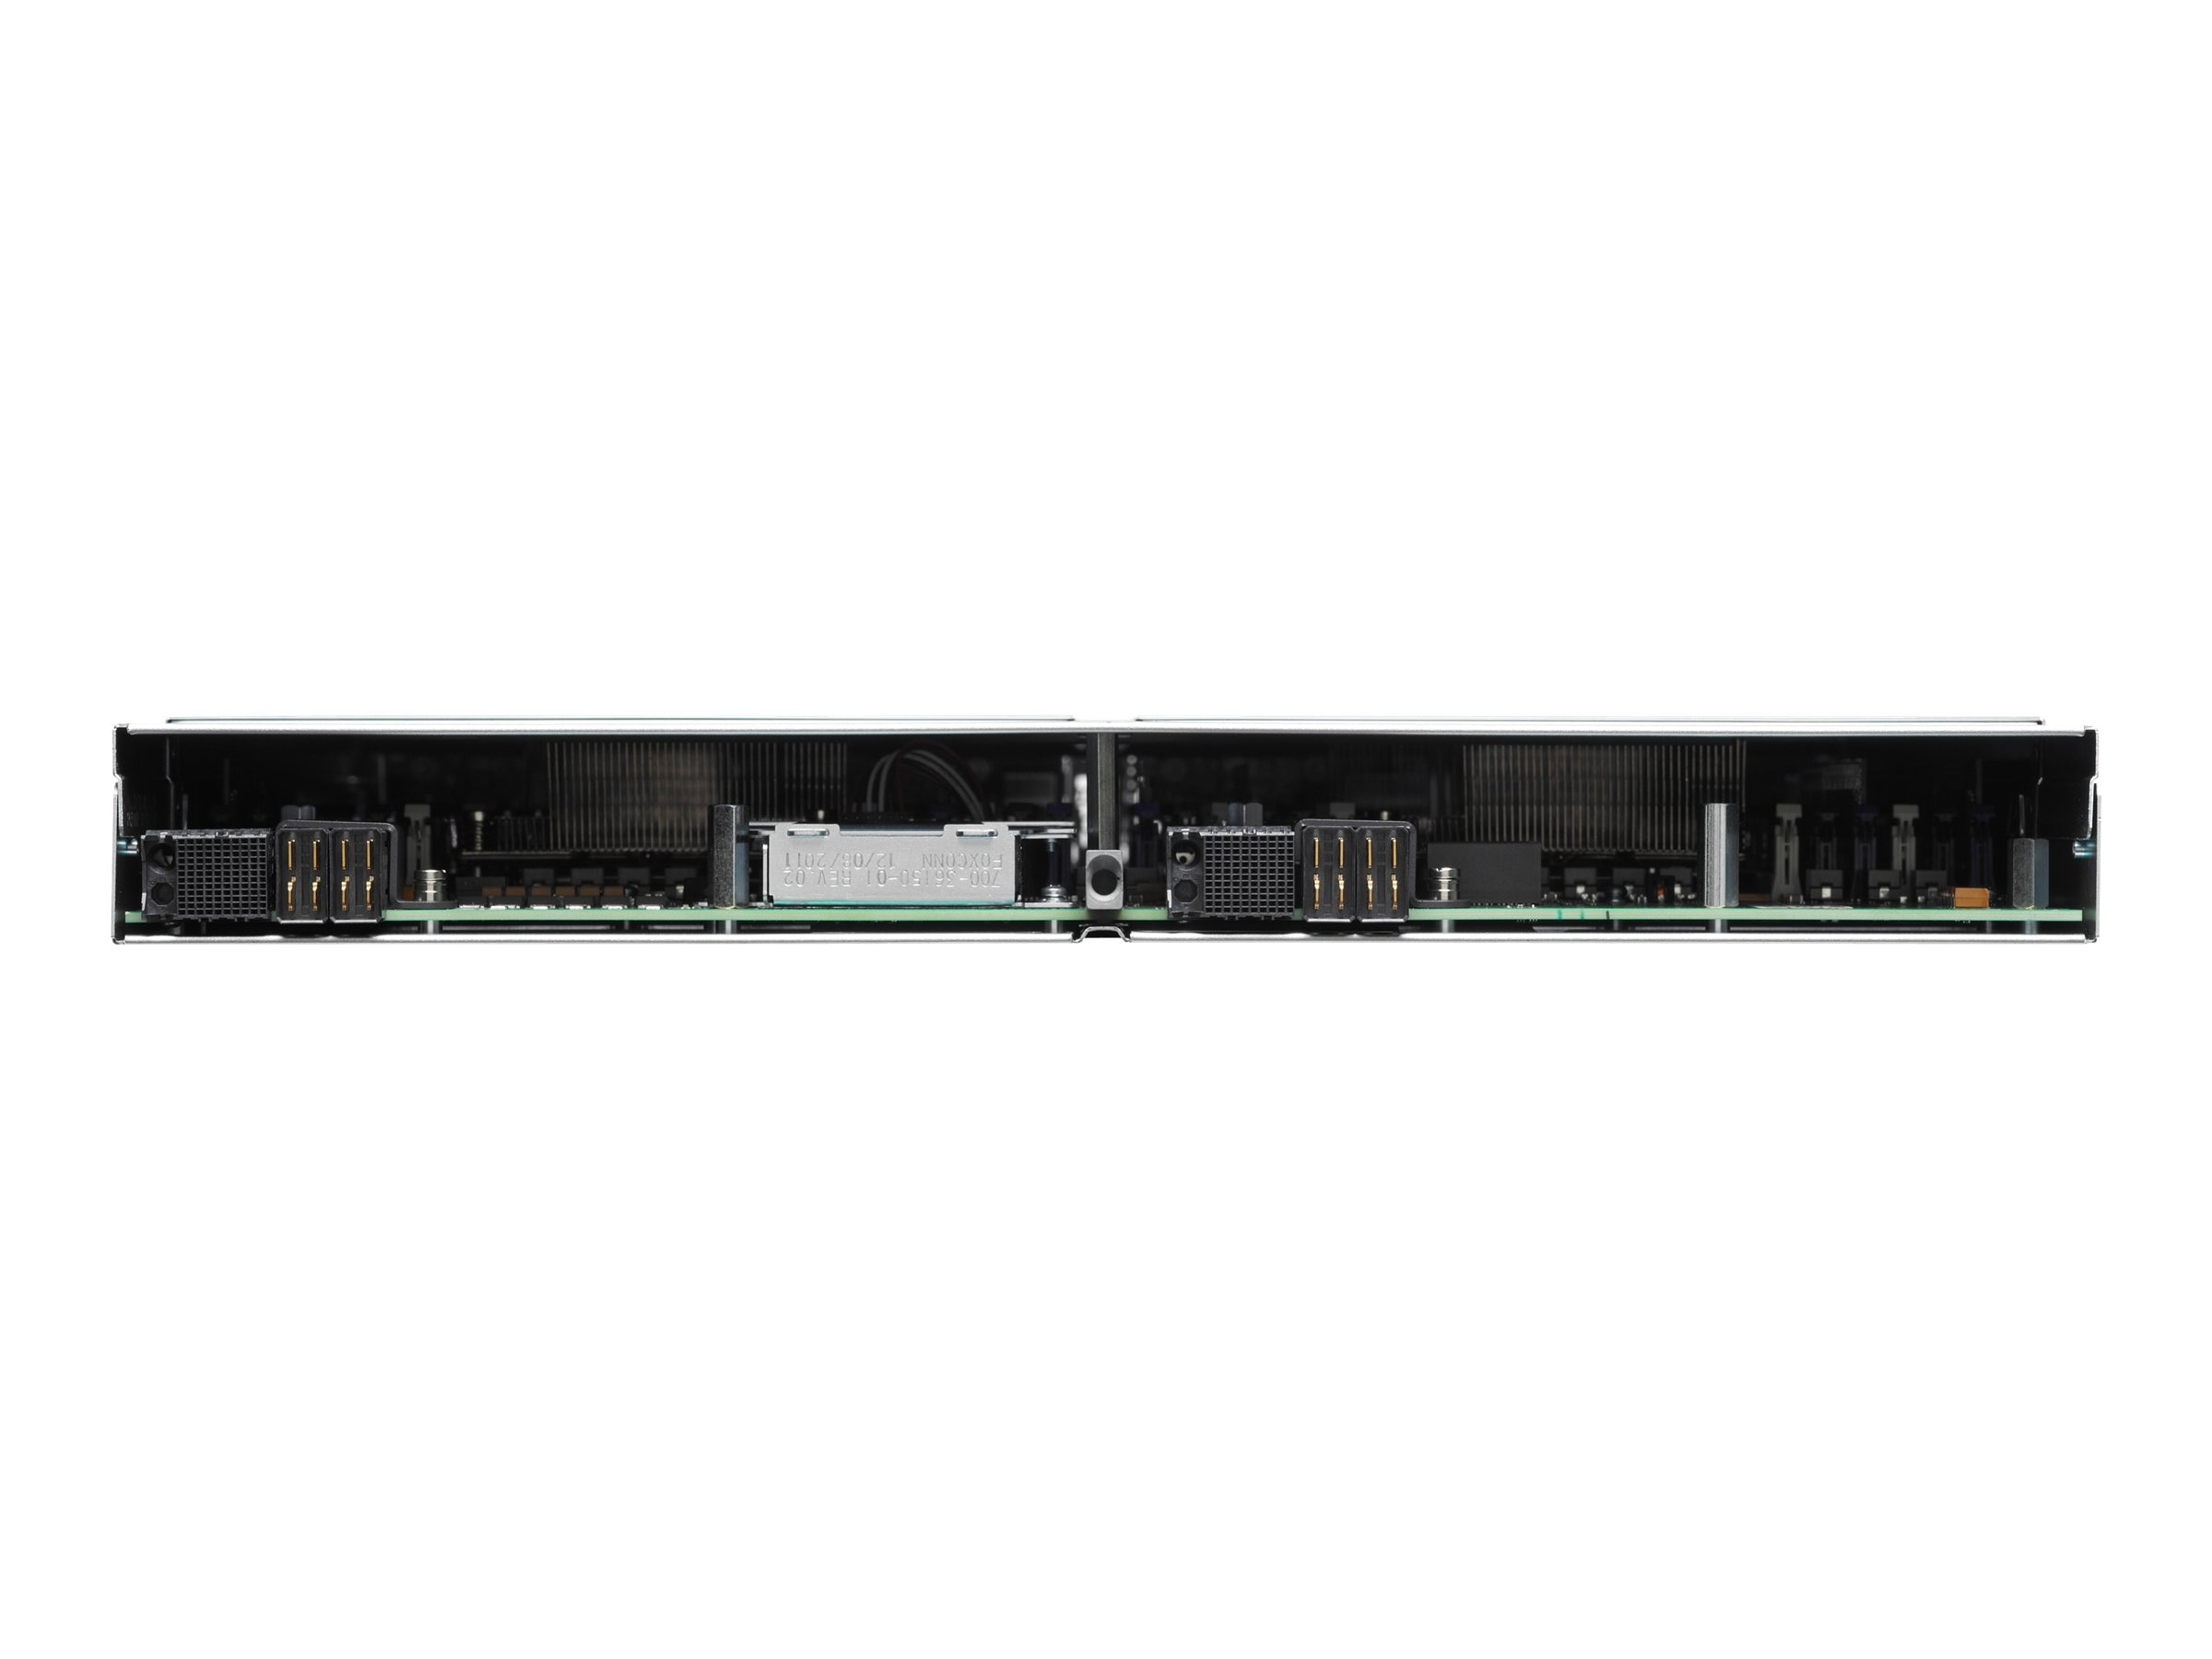 Cisco UCSB-B420-M3-D Image 4